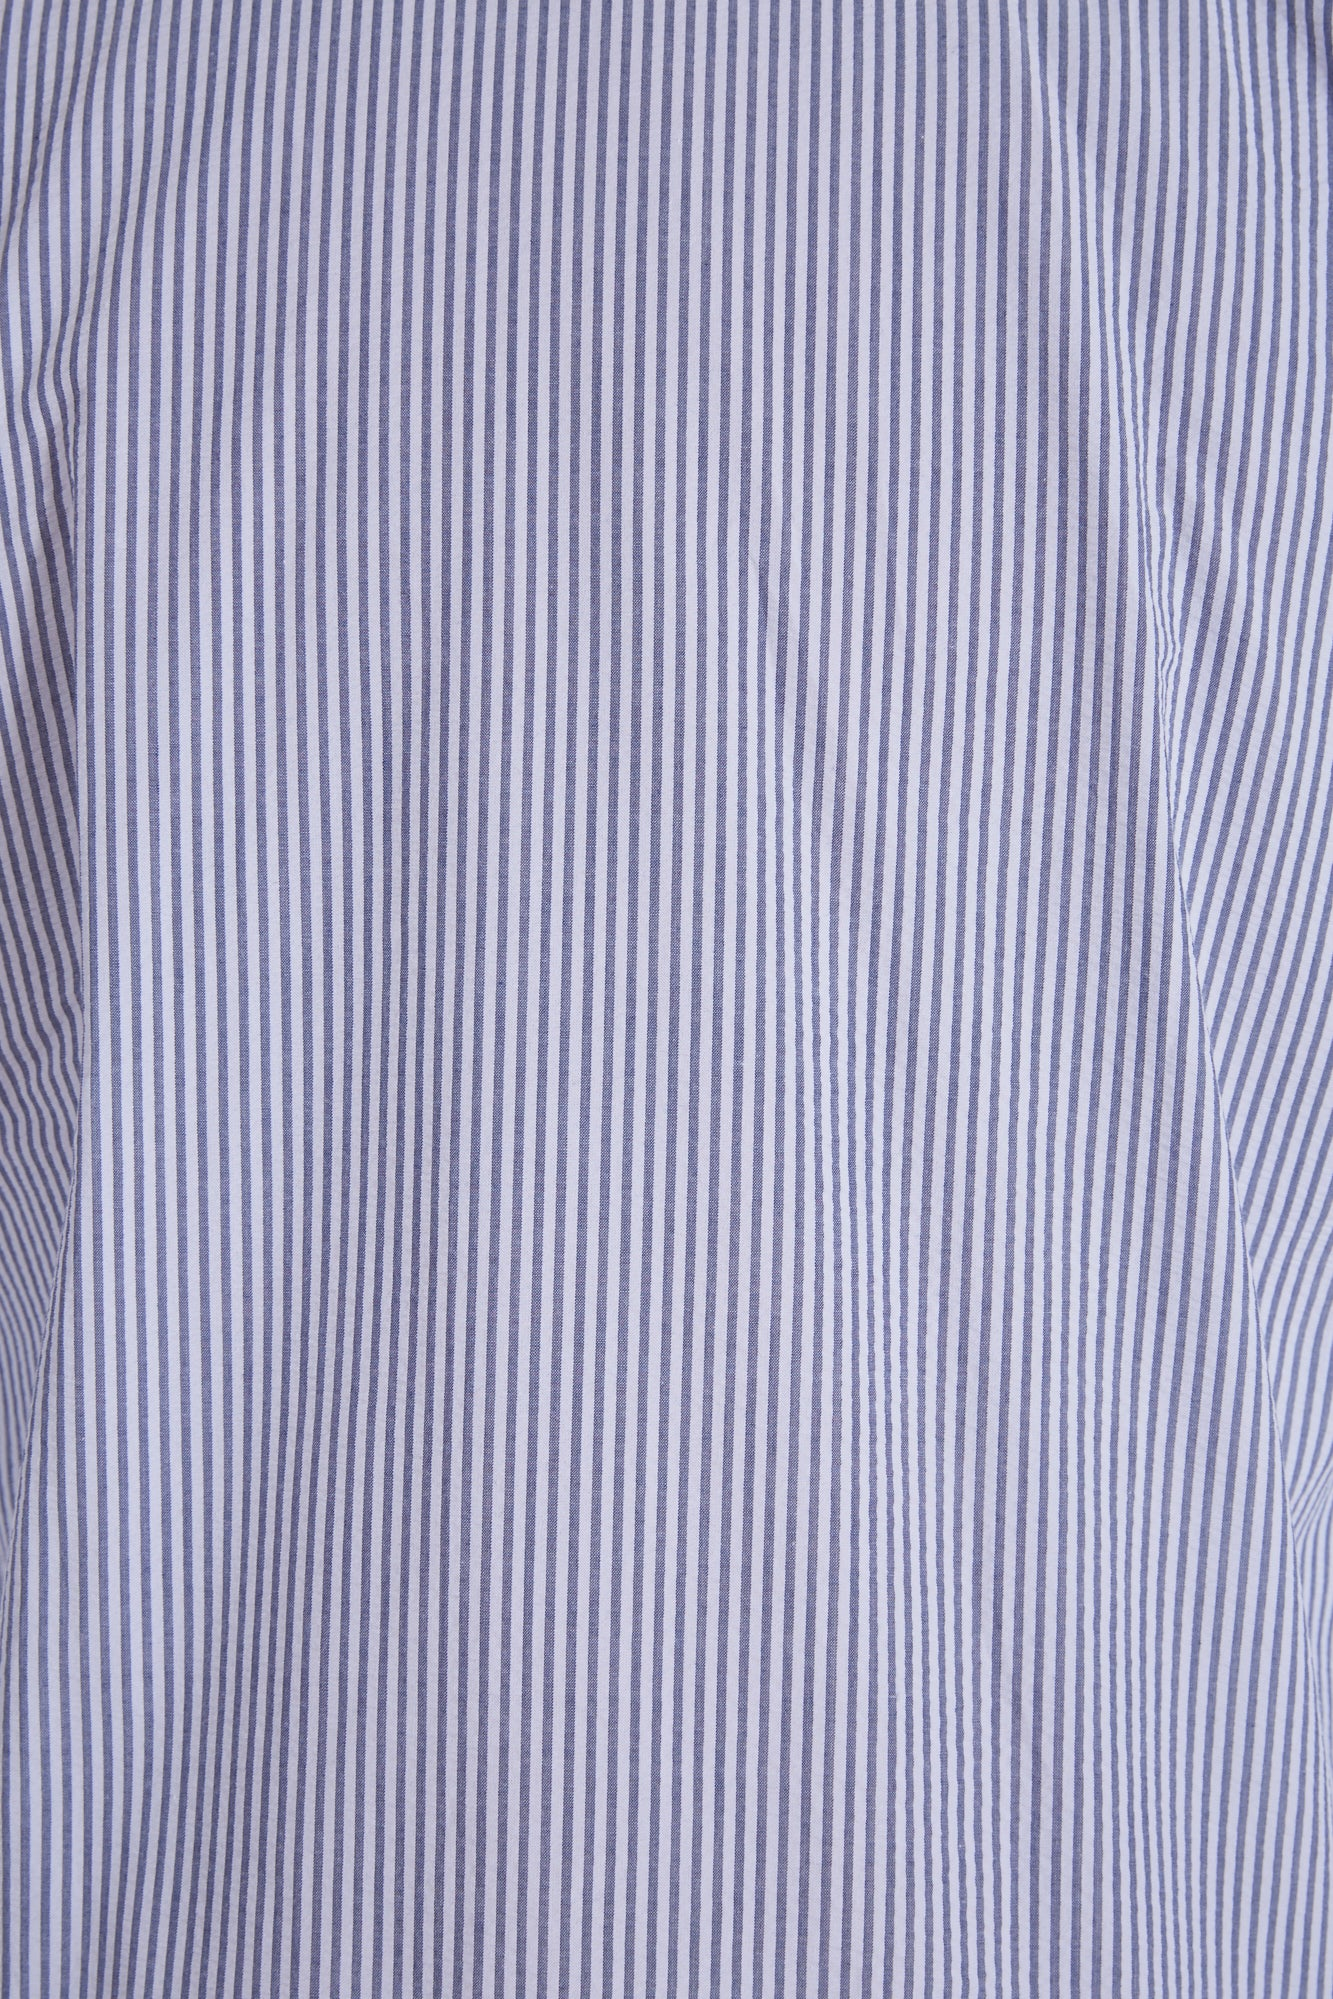 Blazer for Men Striped Seersucker Shirt - Shirts - Blazer For Men - LALONDE's